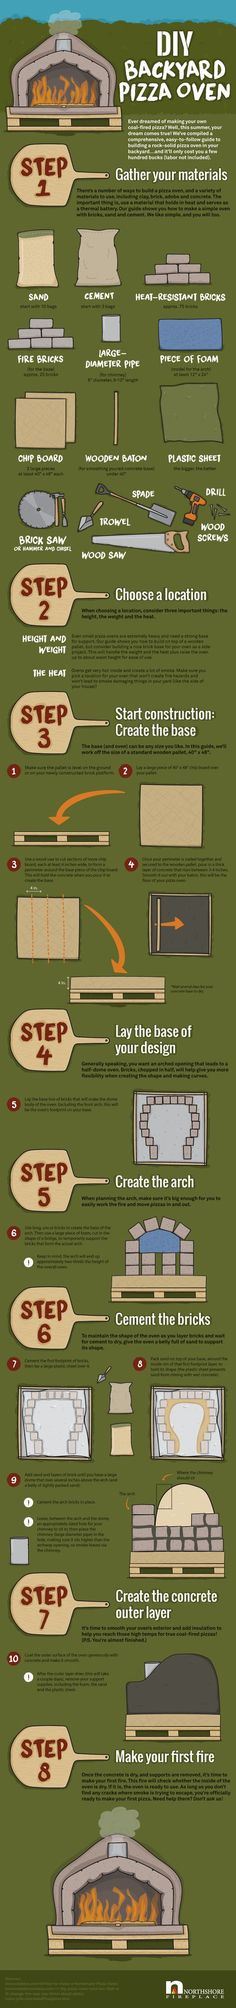 DIY pizza oven infographic Pizza Oven Outdoor, Outdoor Cooking, Outdoor Kitchens, Diy Kitchens, Outdoor Rooms, Outdoor Living, Four A Pizza, Fire Pizza, Weed